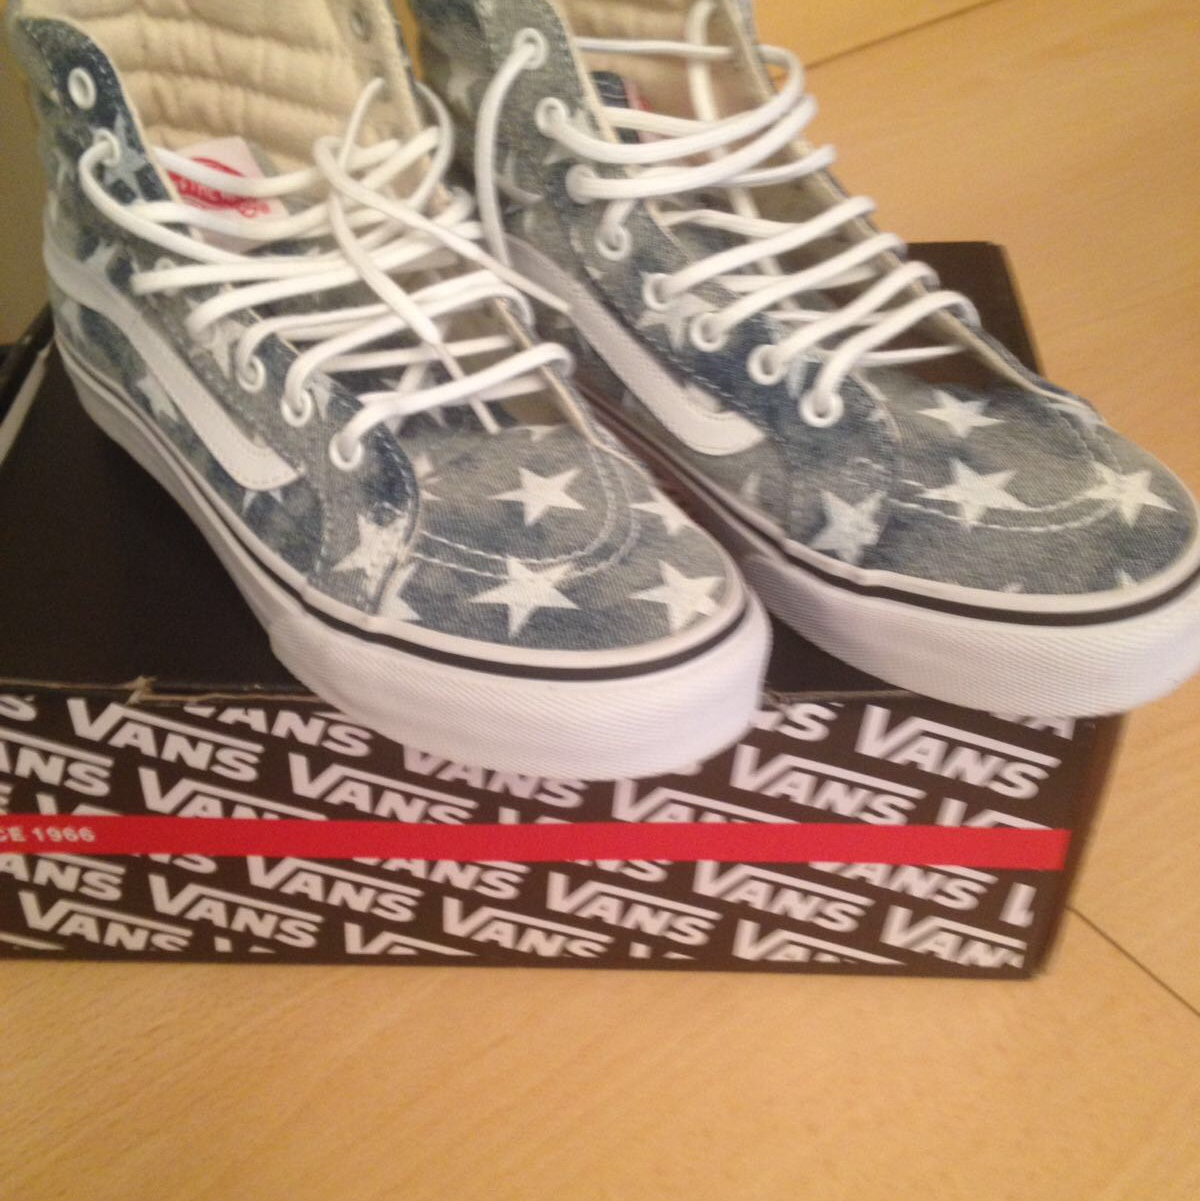 VANS????STARS⭐️WASHED????IN JEANS CON STELLE,NUOVE MAI... - Depop